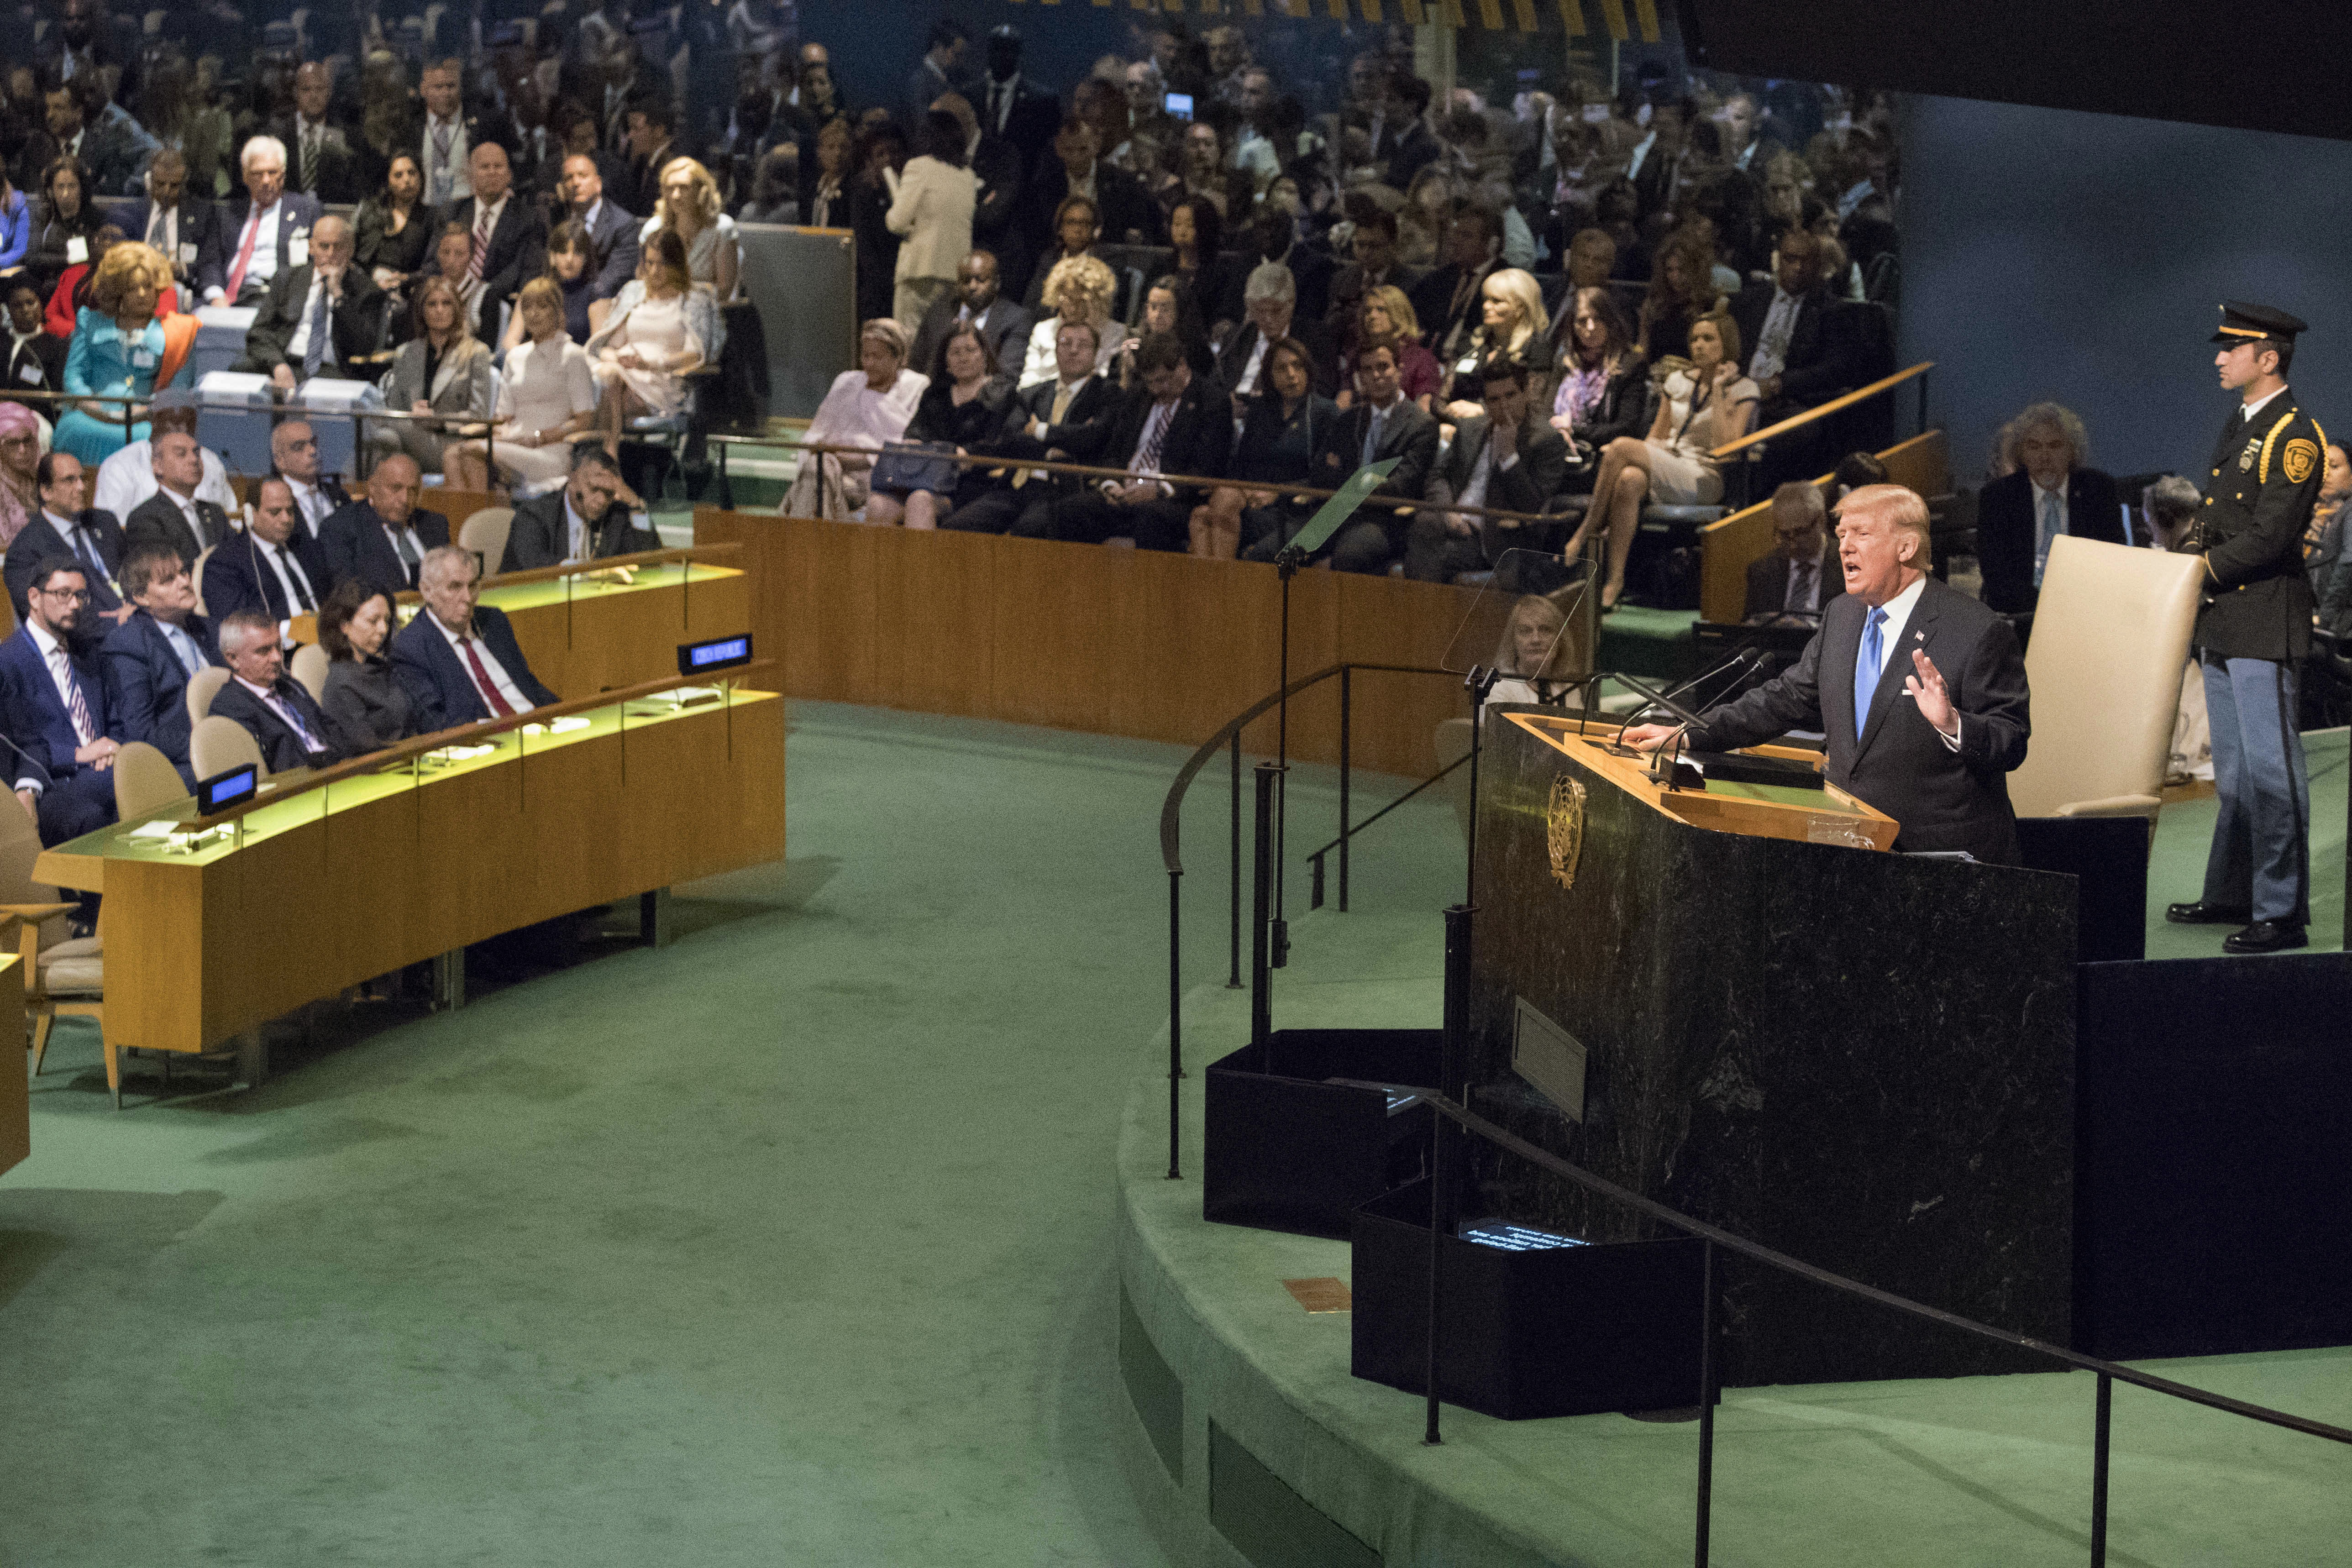 <p>The North Korean delegation table, left, is empty as President Trump speaks during the 72nd session of the United Nations General Assembly at U.N. headquarters, Tuesday, Sept. 19, 2017. (Photo: Mary Altaffer/AP) </p>